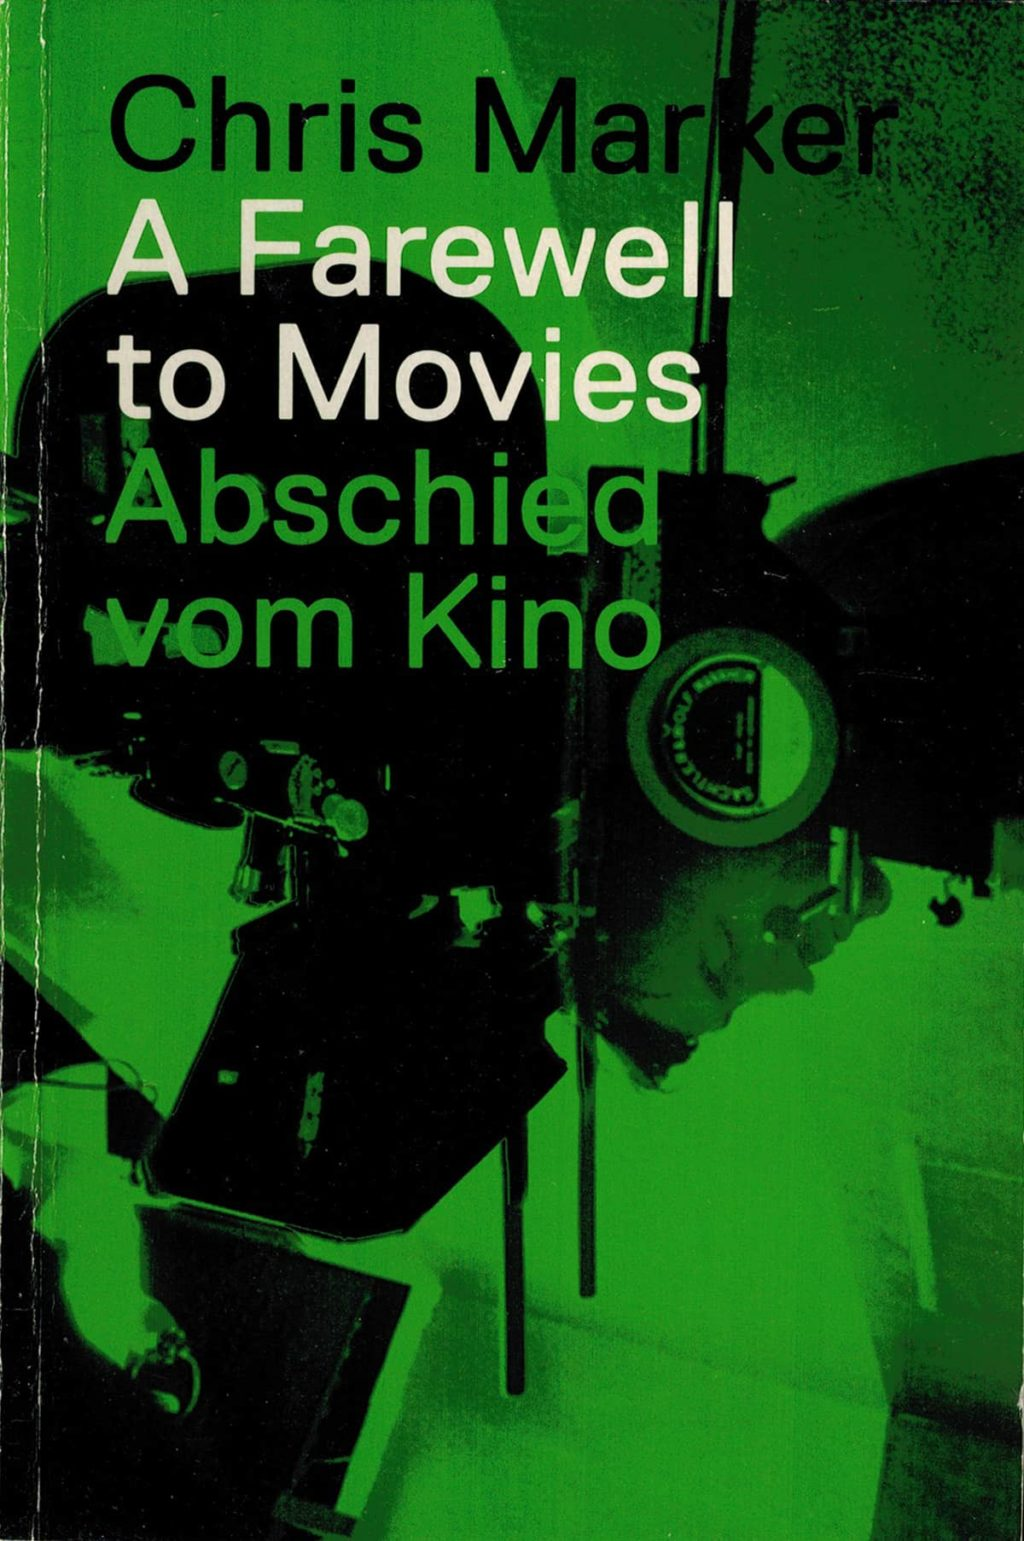 A Farewell to Cinema - Abschied vom Kino by Chris Marker